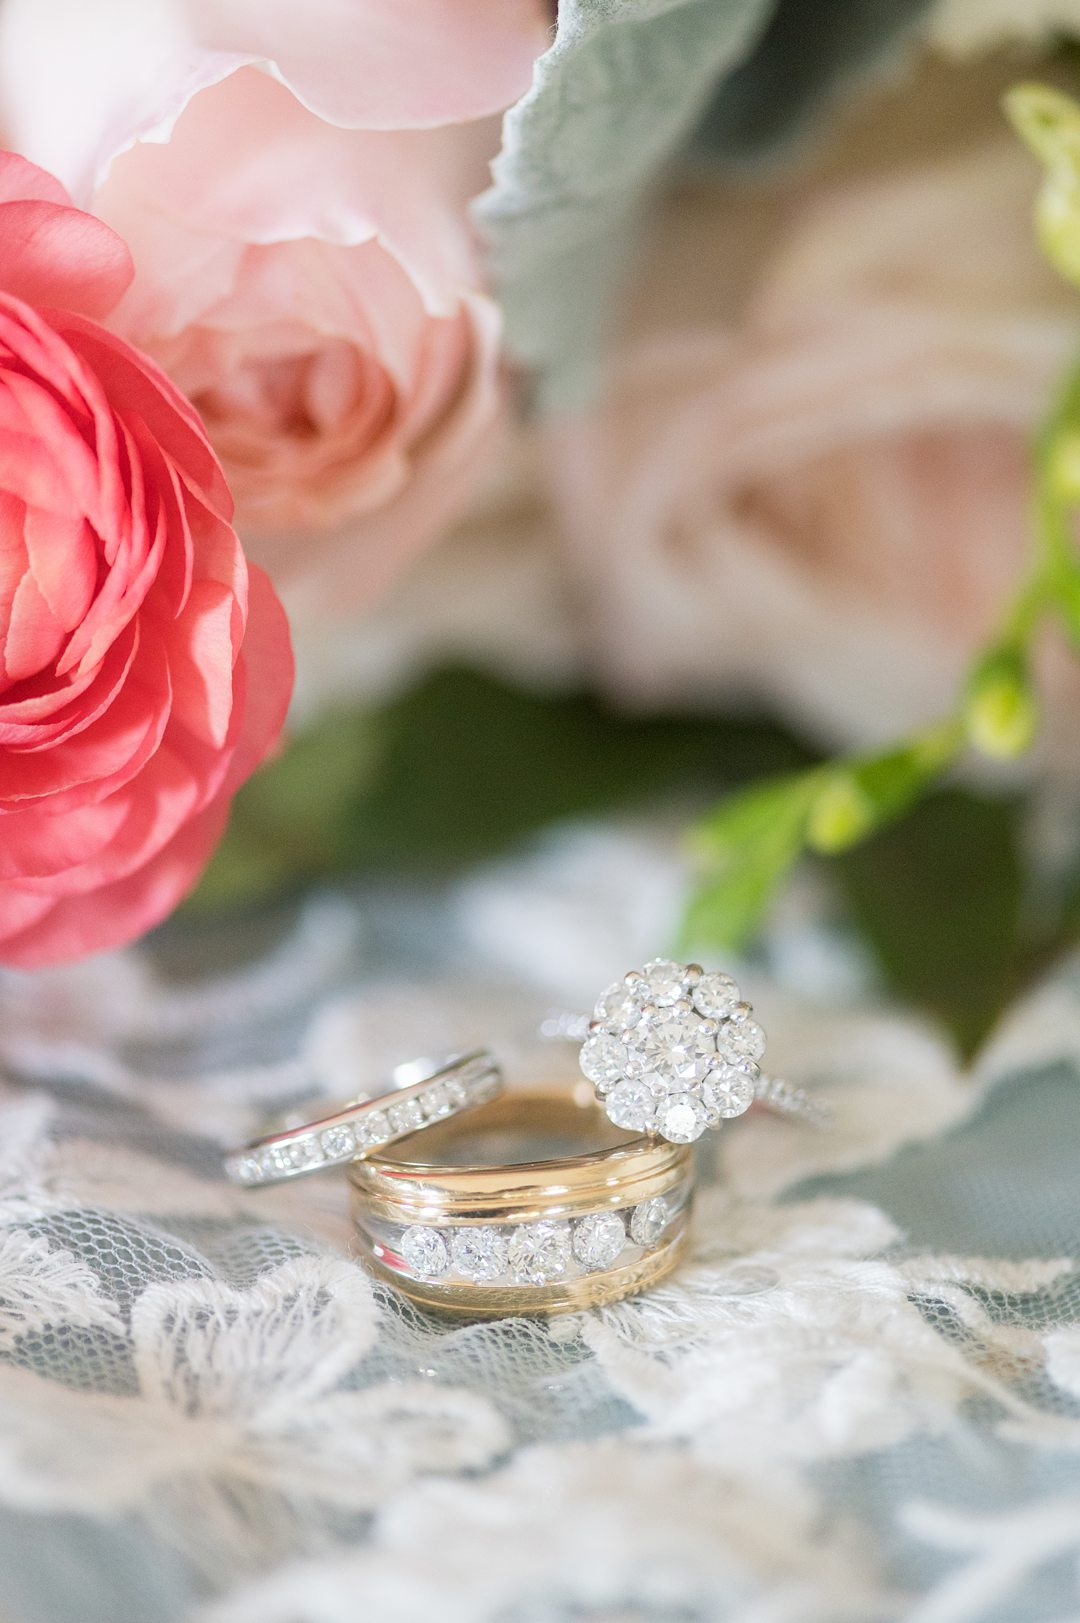 Family heirloom wedding rings for a small wedding in Charlottesville, Virginia. Detail photos by Mikkel Paige Photography. #mikkelpaige #weddingrings